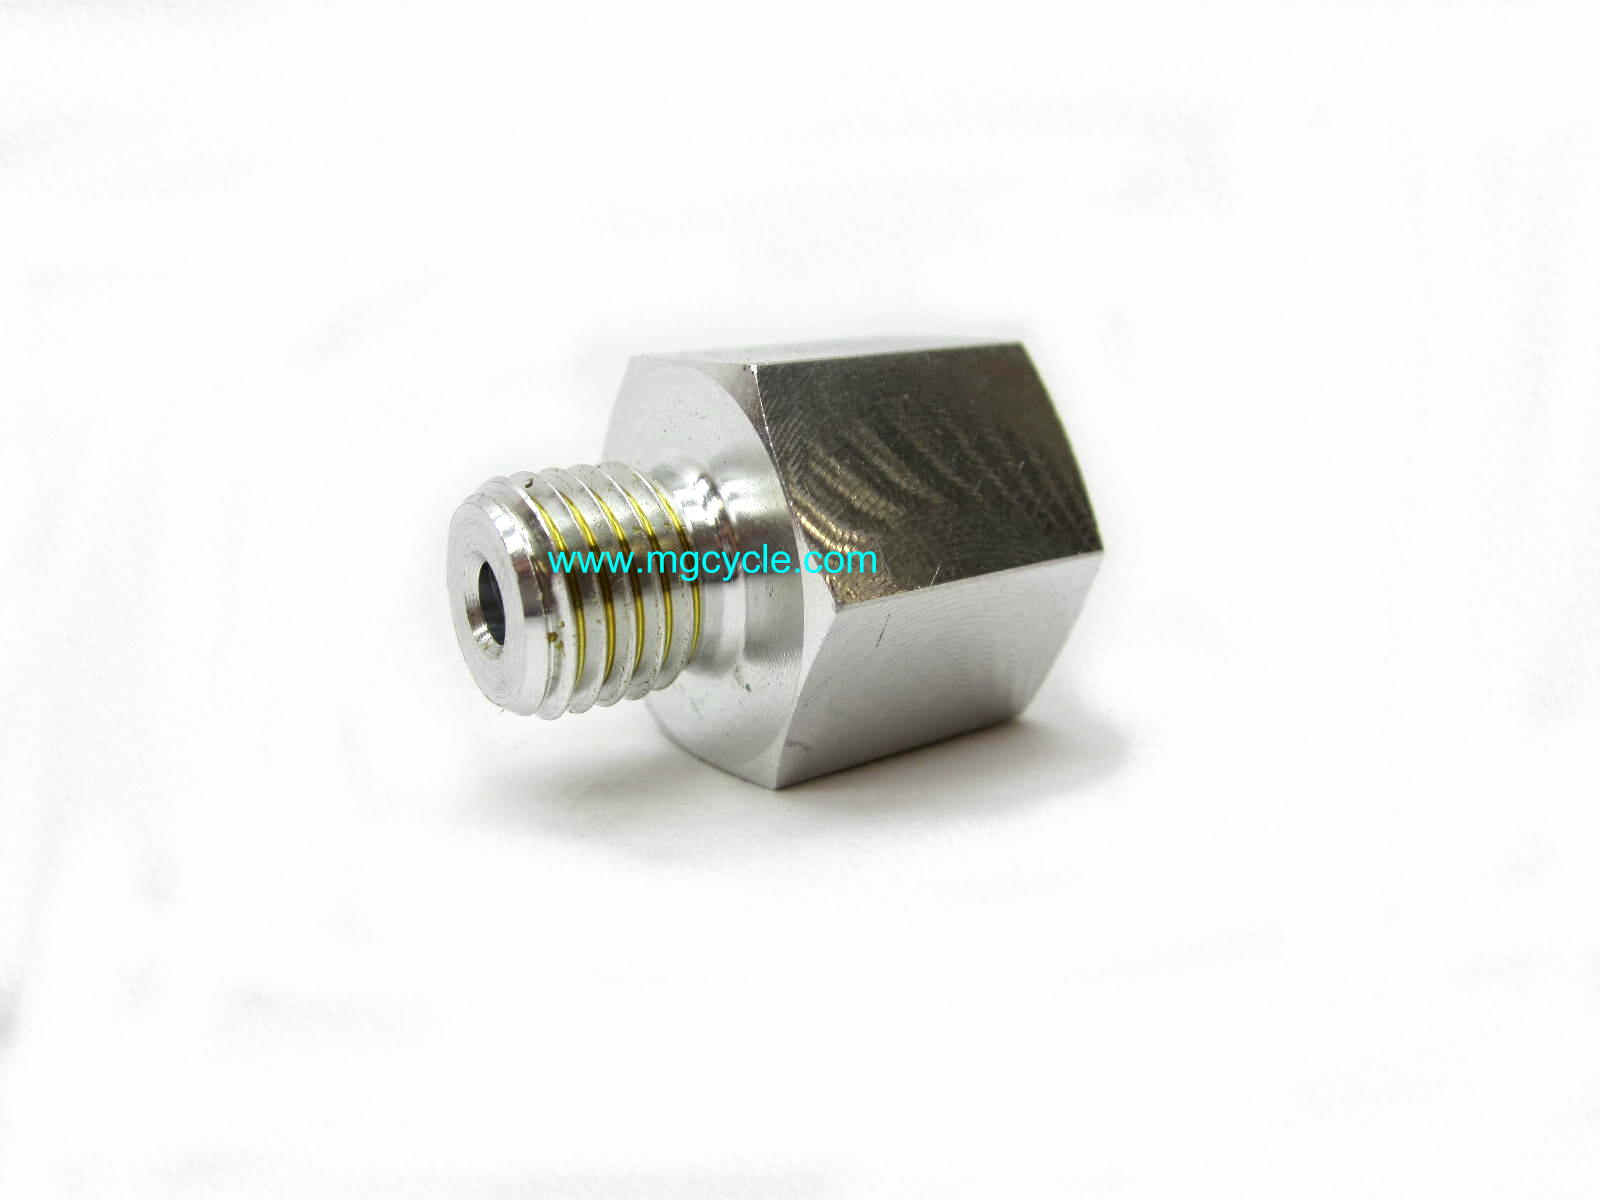 adapter, oil pressure switch Stelvio NTX